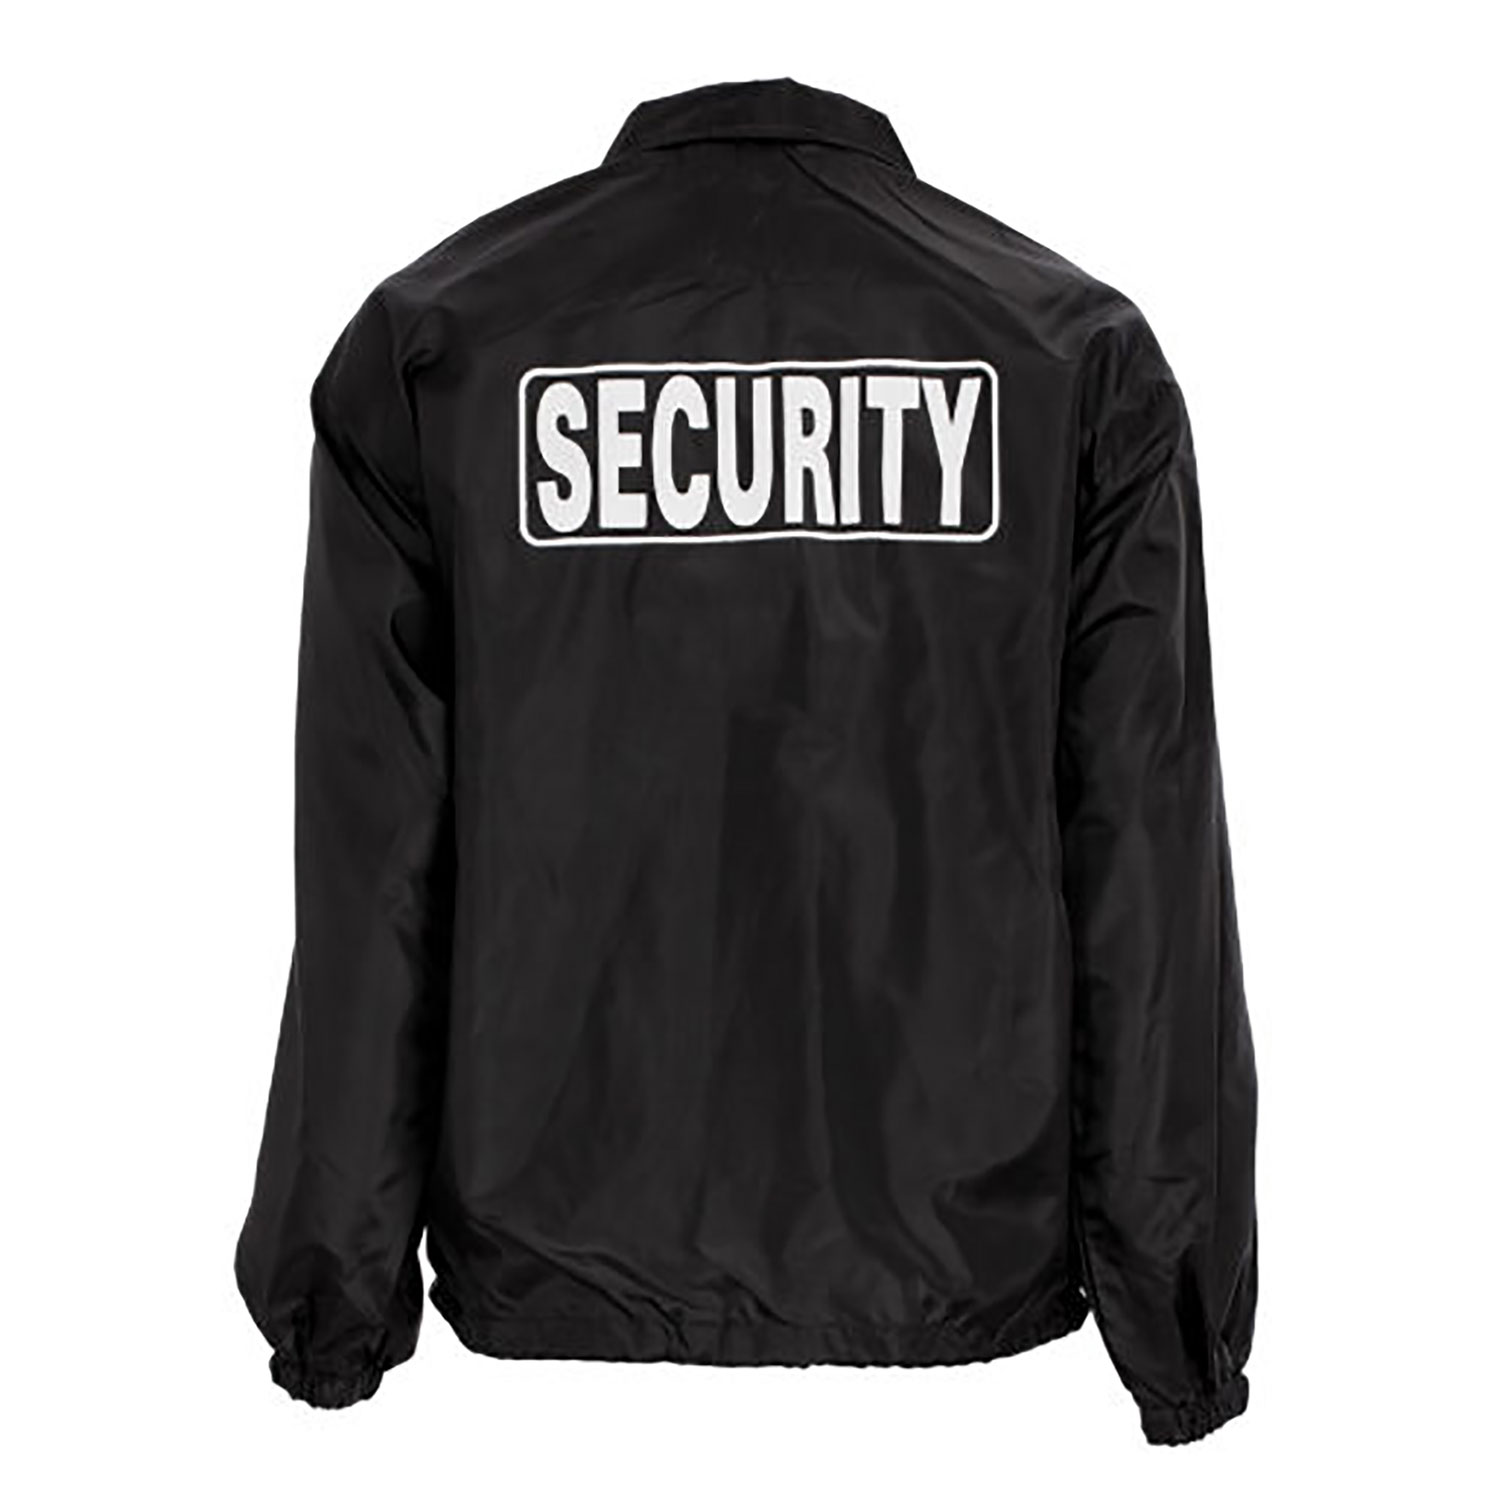 Tact Squad Classic Security Windbreaker